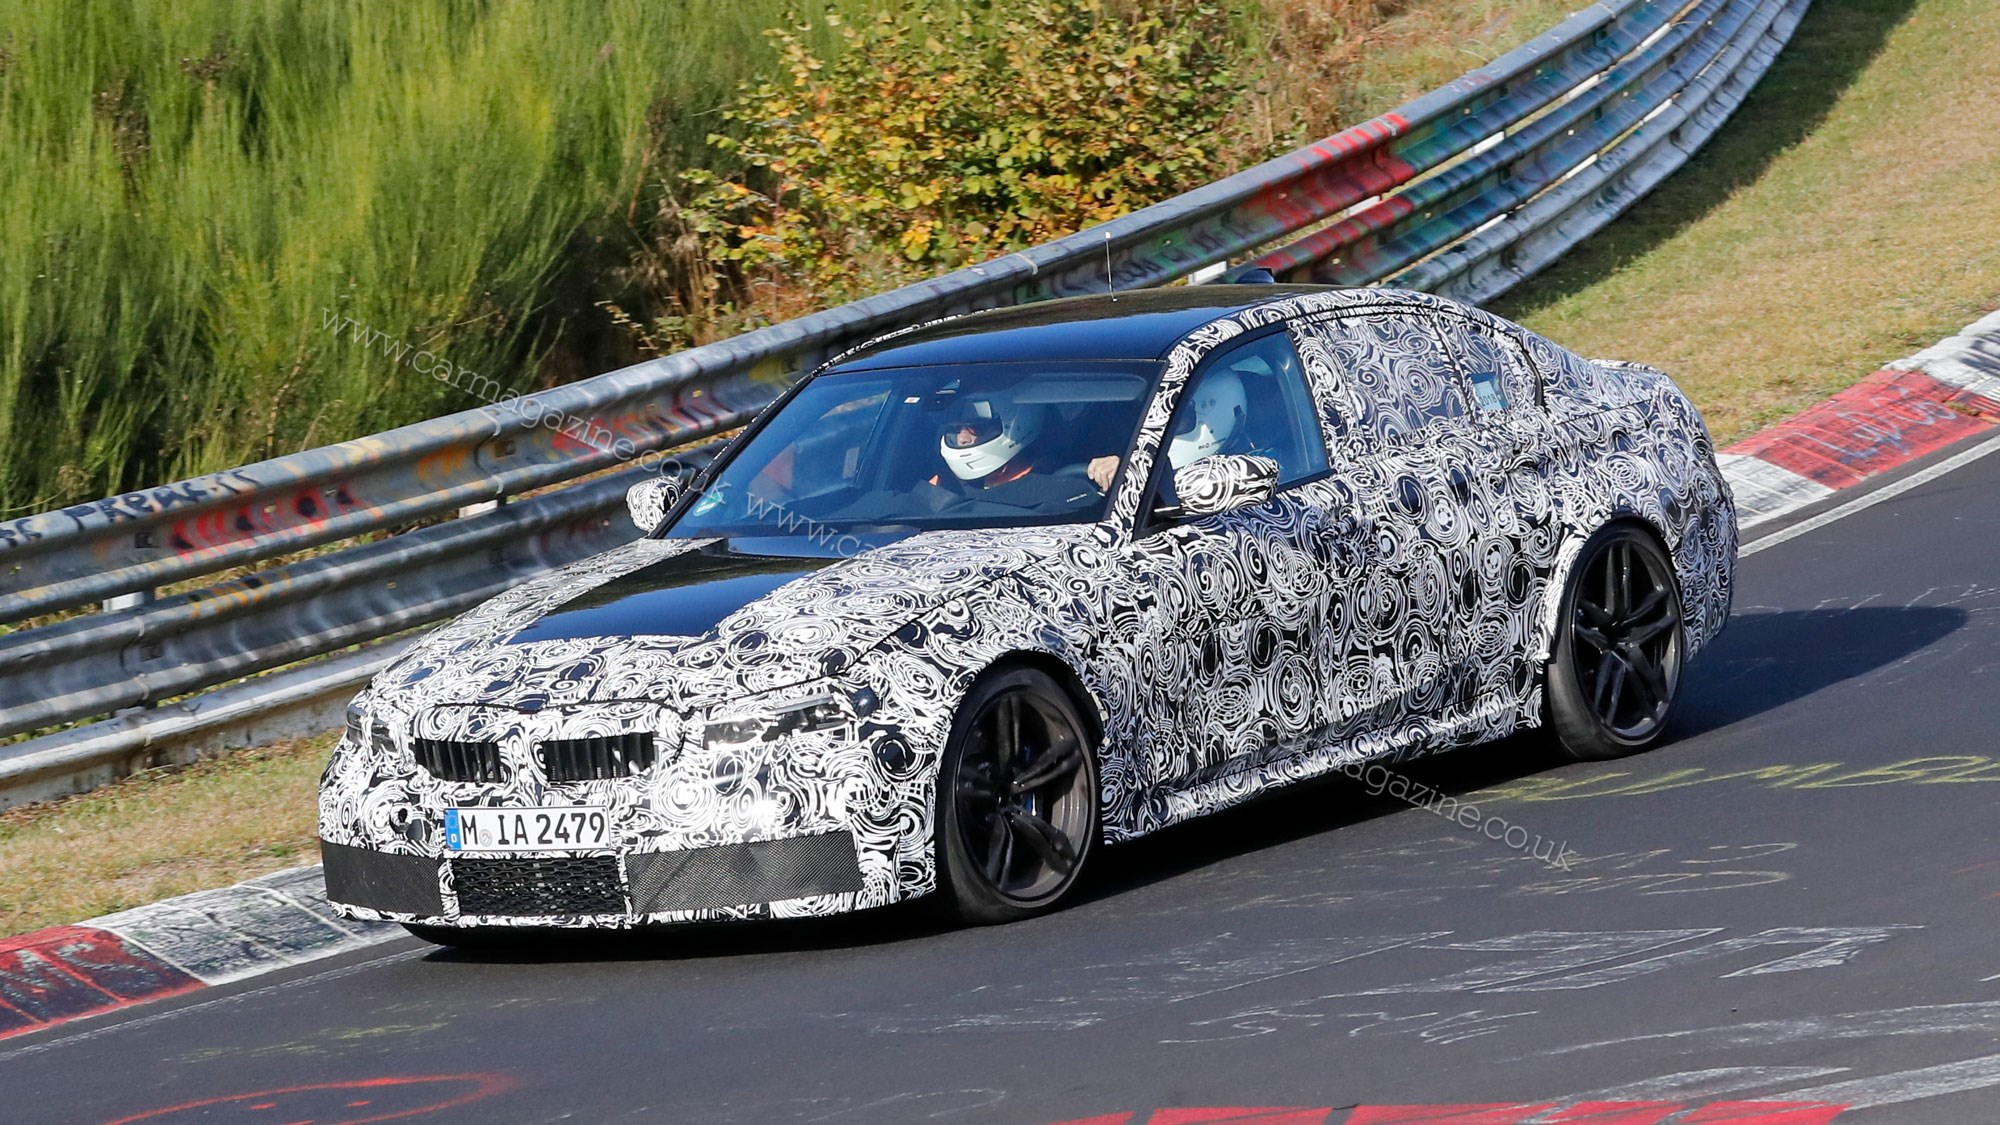 New 2020 Bmw M3 G80 Prototype Spied Testing At The Ring Car 2015 Mitsubishi Eclipse Efficiency And Velocity Best Auto Insurance